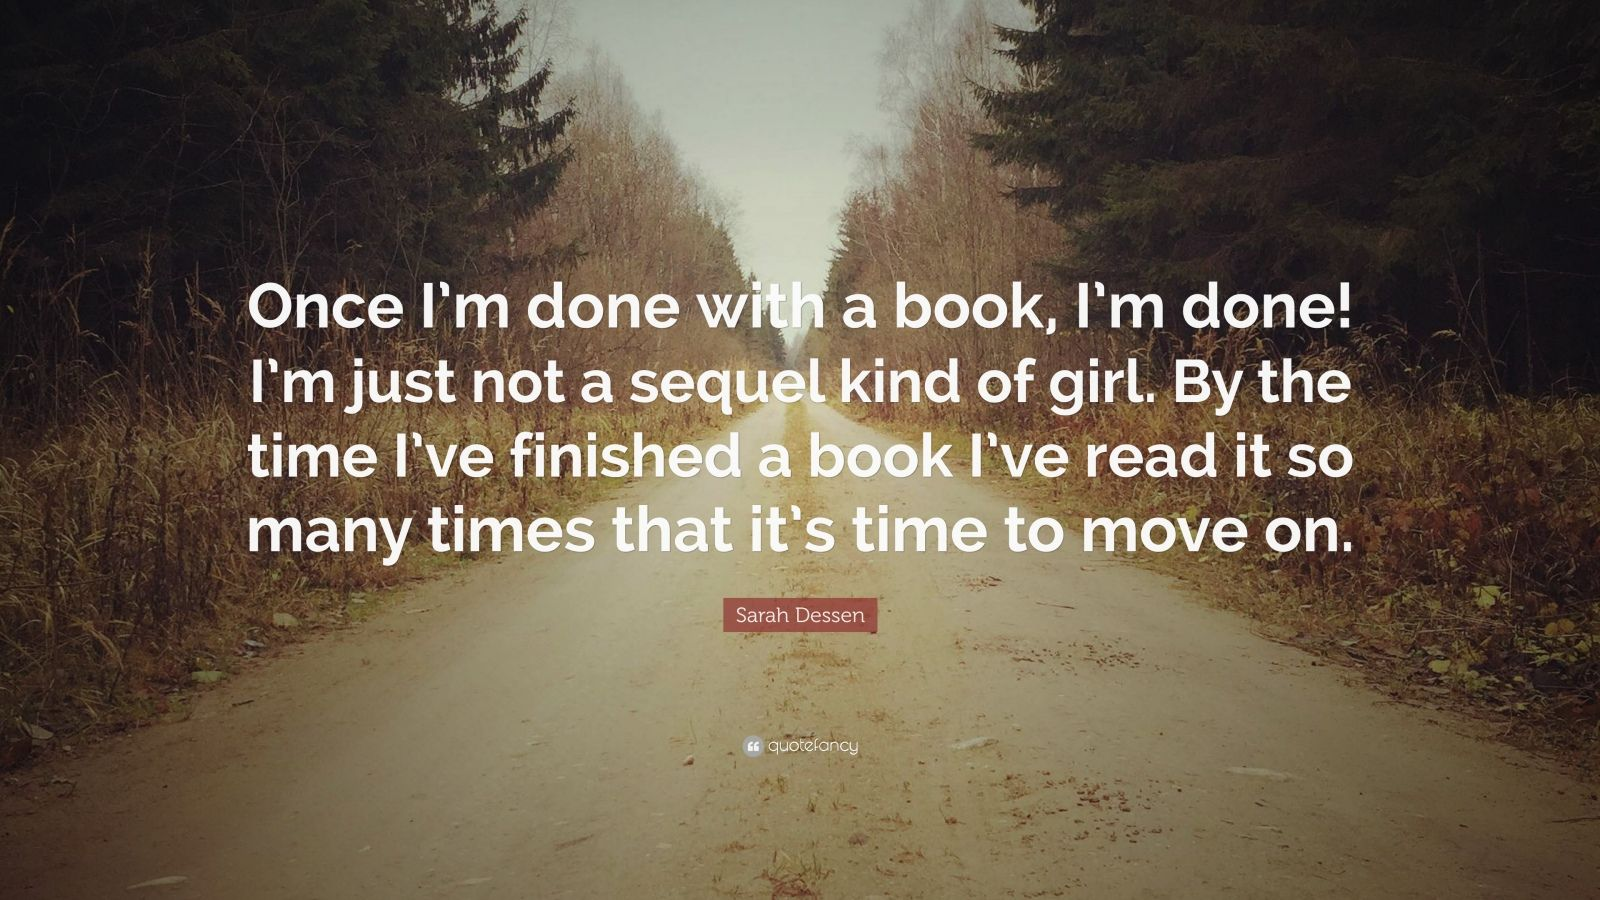 """Sarah Dessen Quote: """"Once I'm done with a book, I'm done! I'm just not a sequel kind of girl. By the time I've finished a book I've read it so many times that it's time to move on."""""""